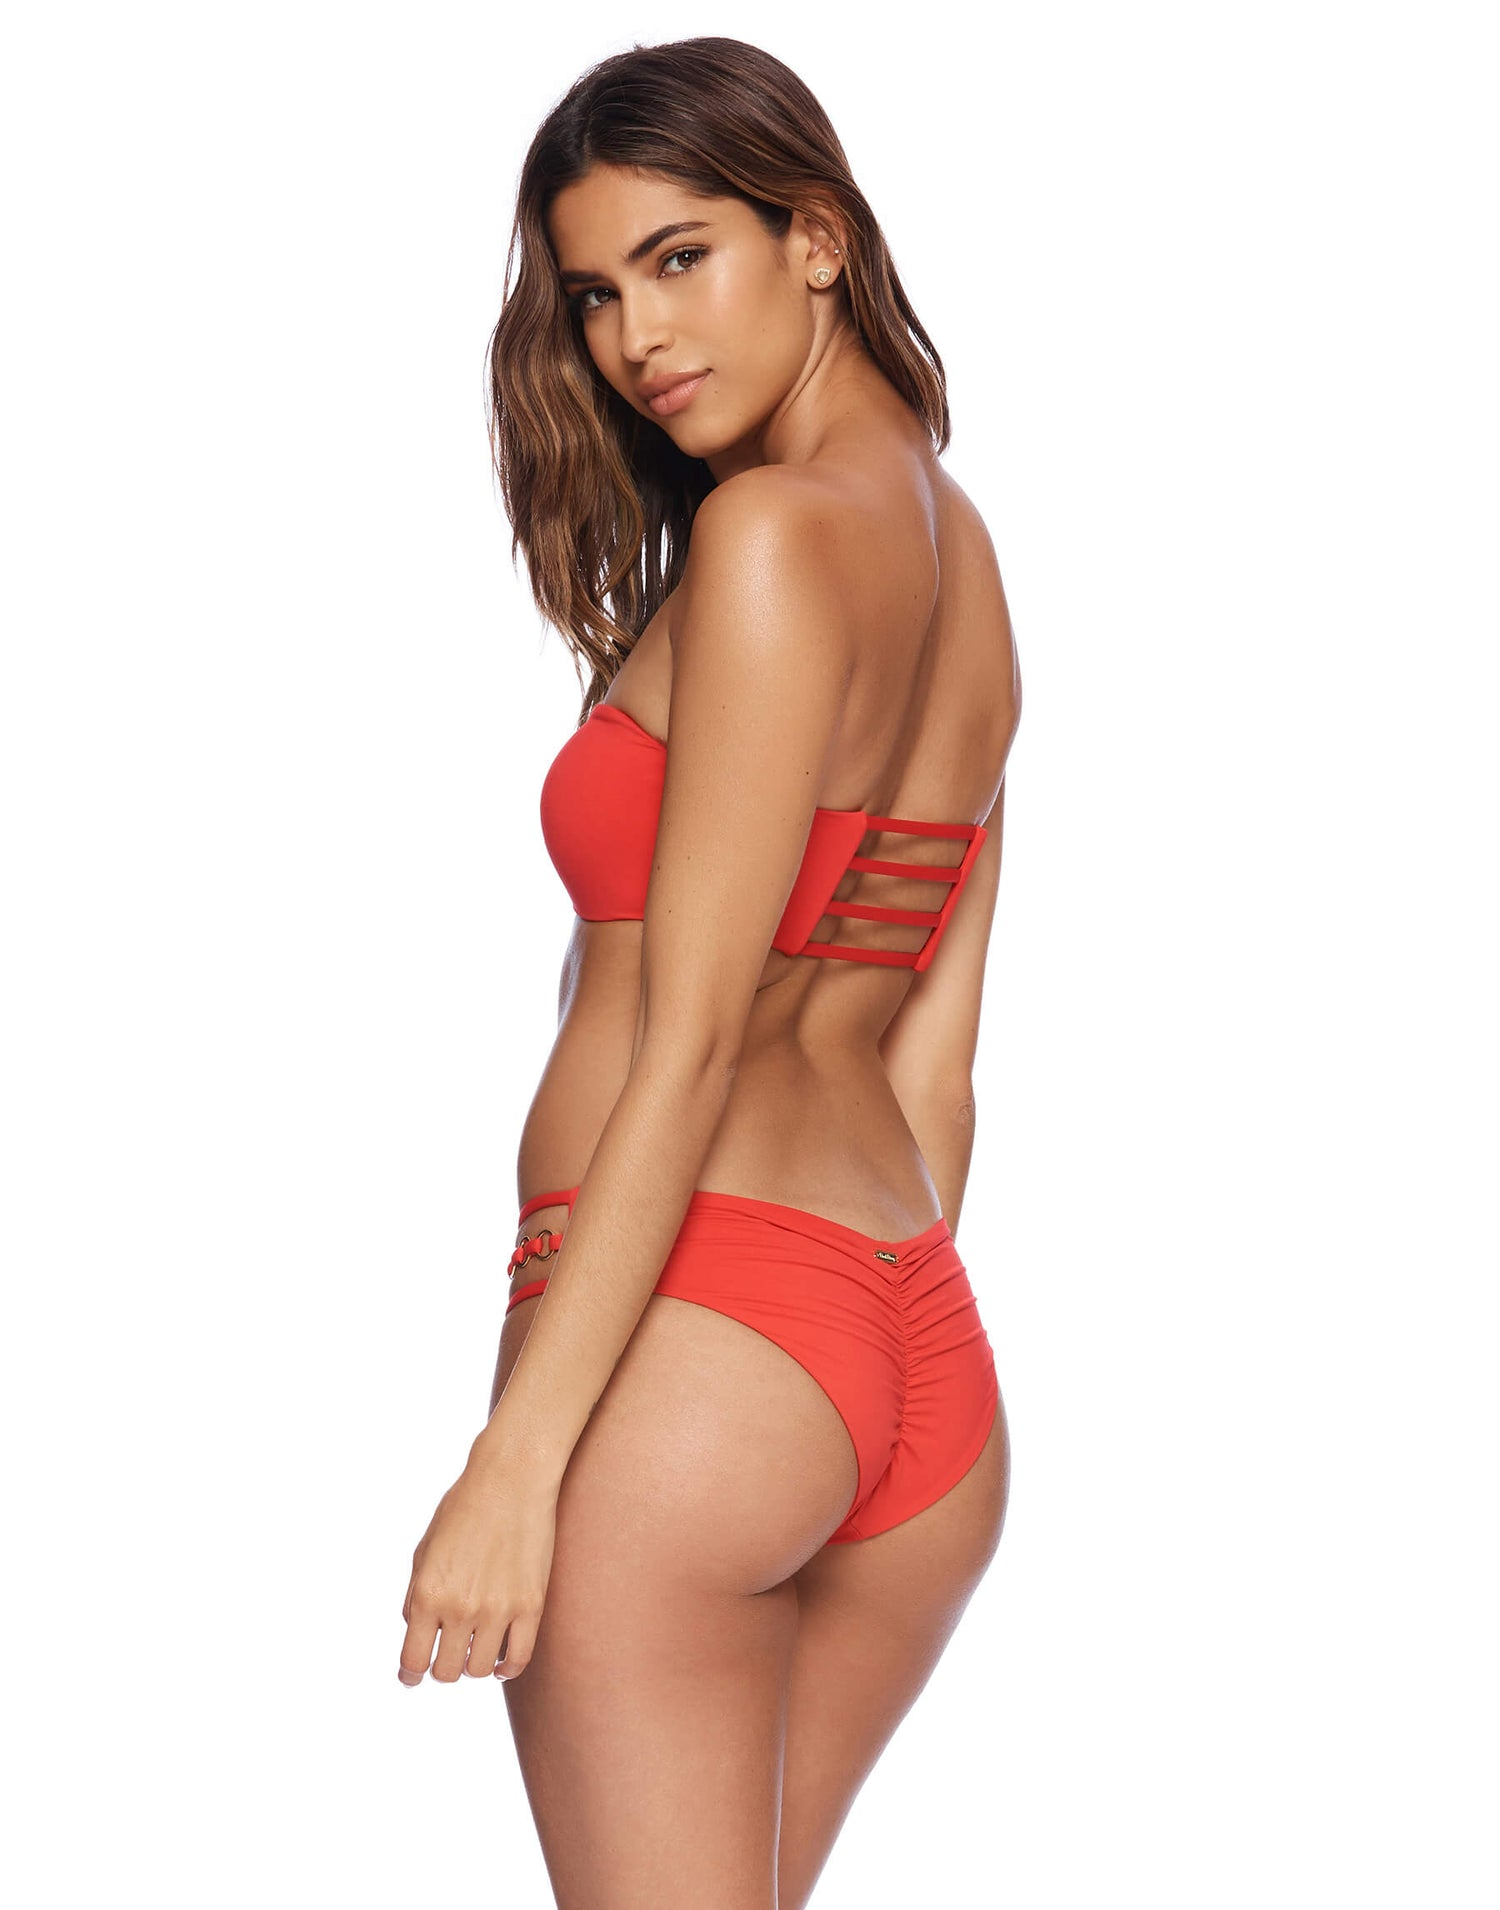 Ireland Ring Bandeau in Red Back View